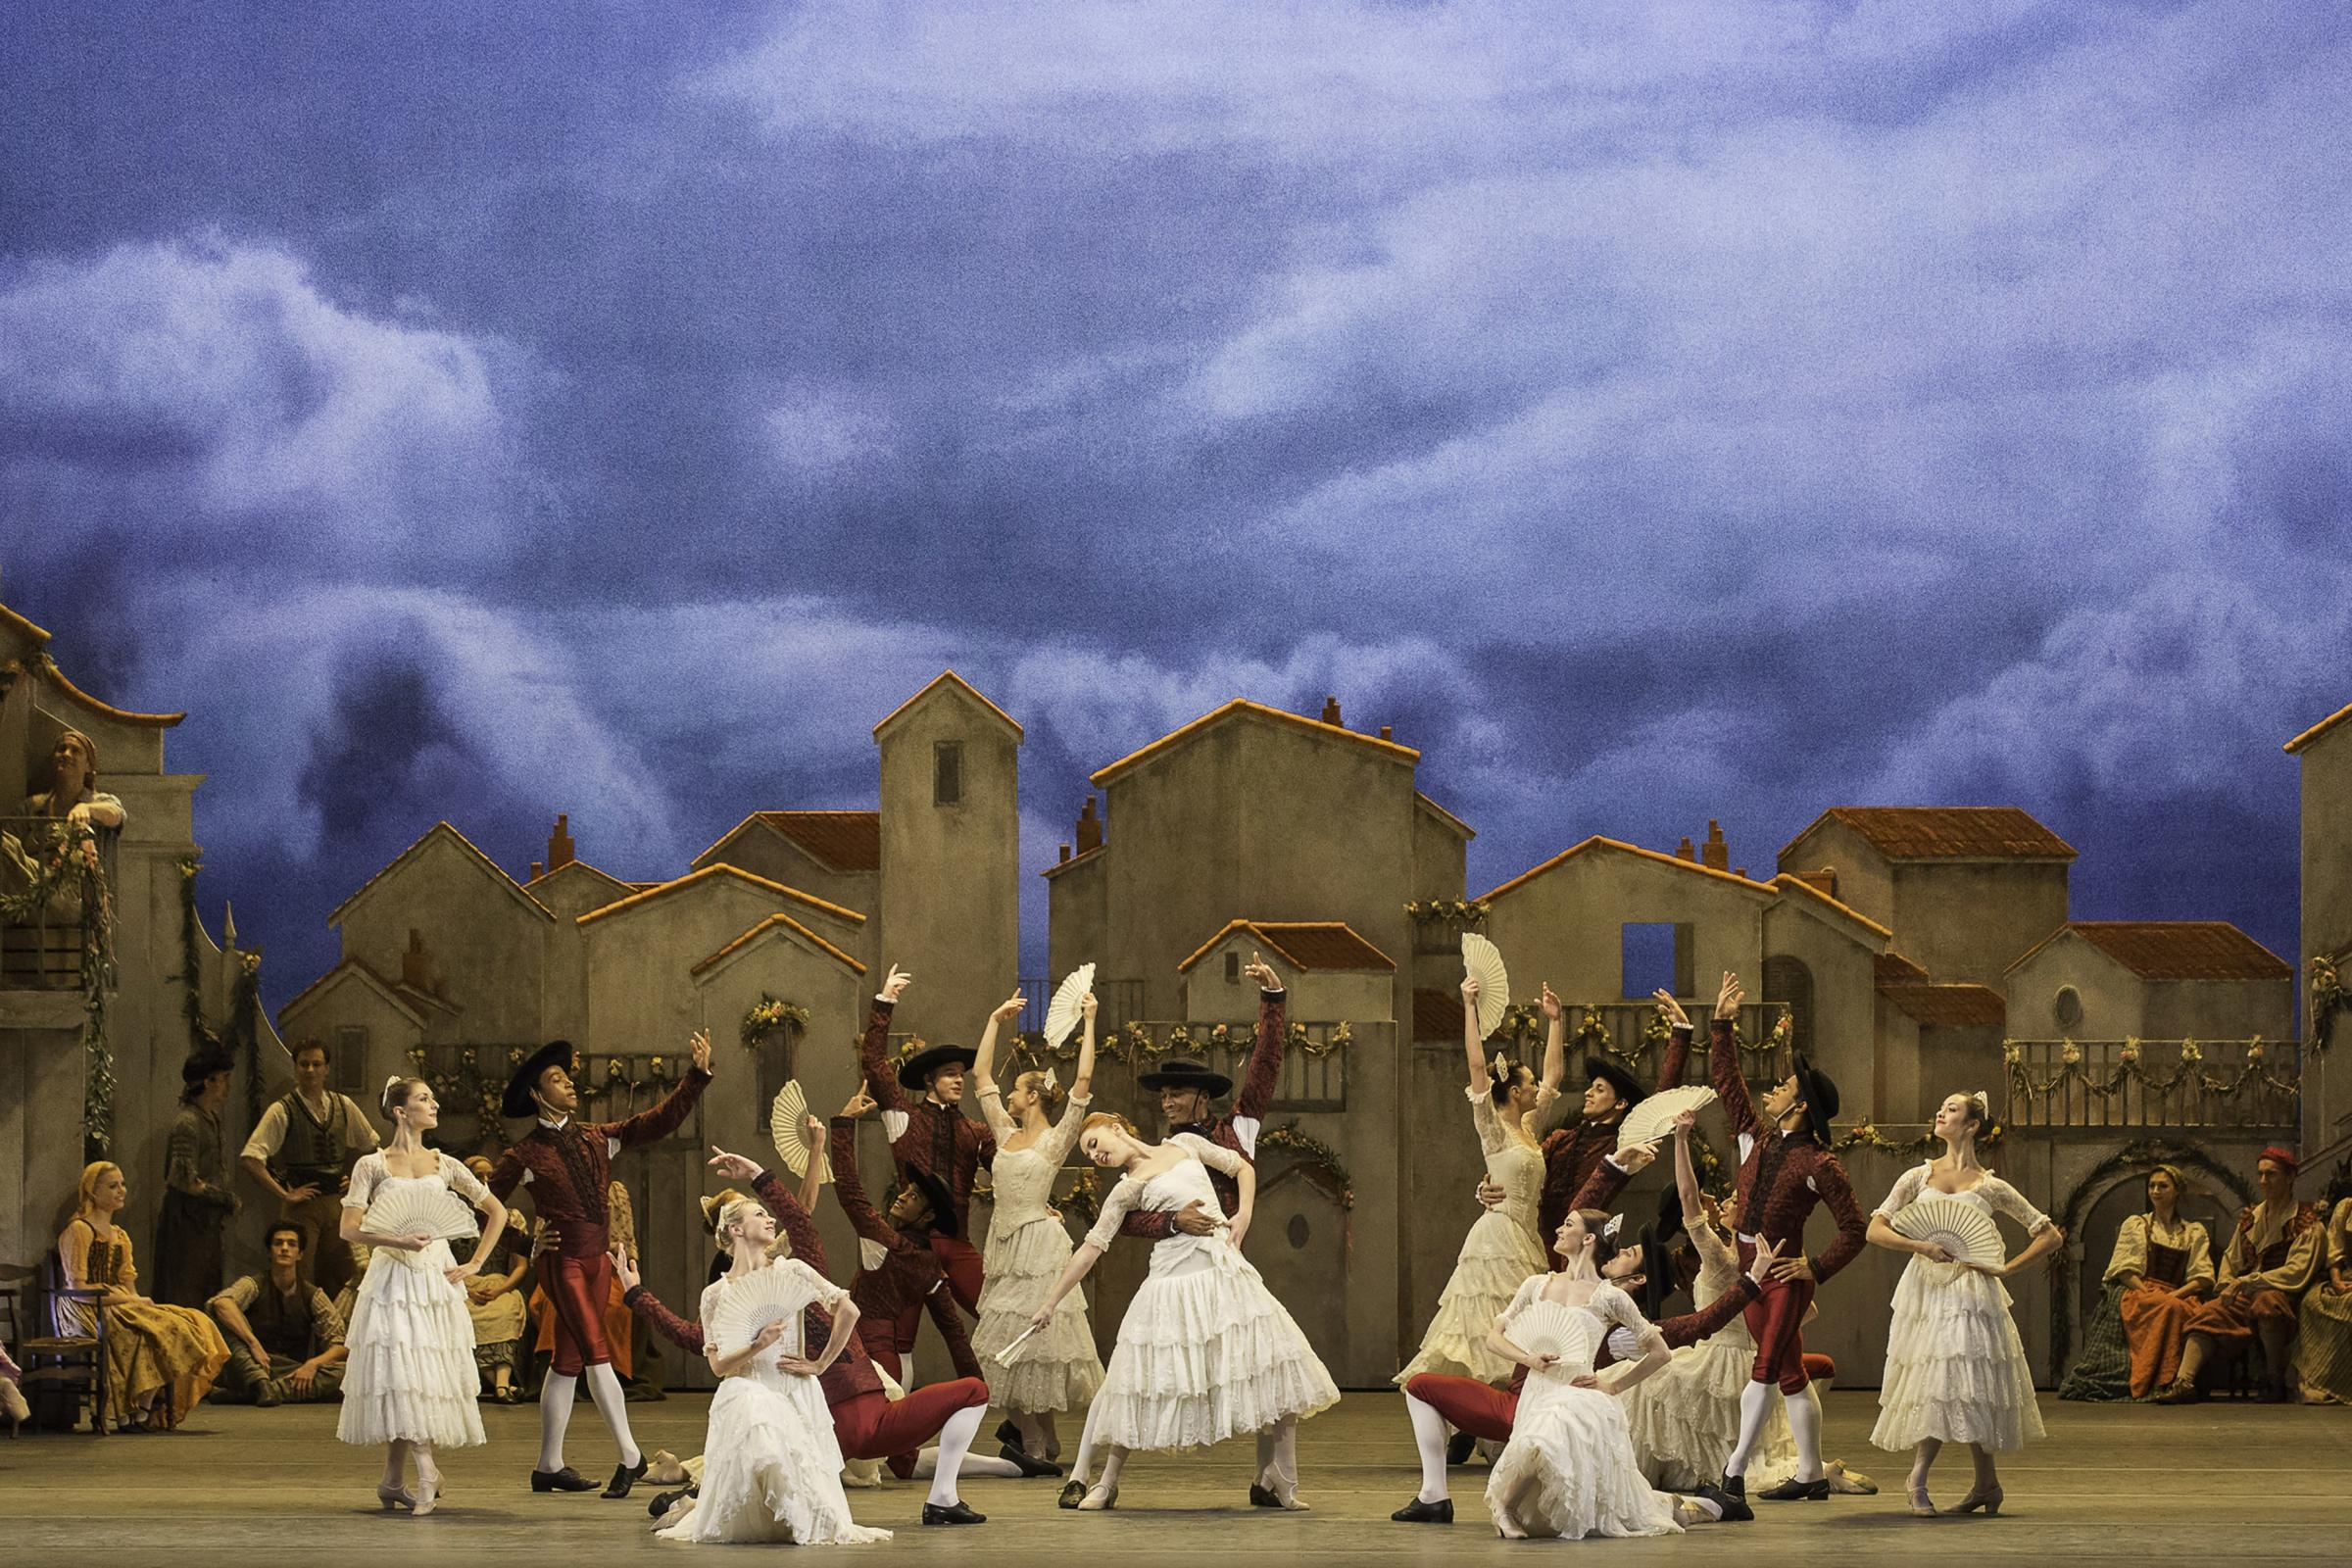 The Royal Ballet's Don Quixote is to be screened at Cardigan's Theatr Mwldan. PICTURE: Johan Persson